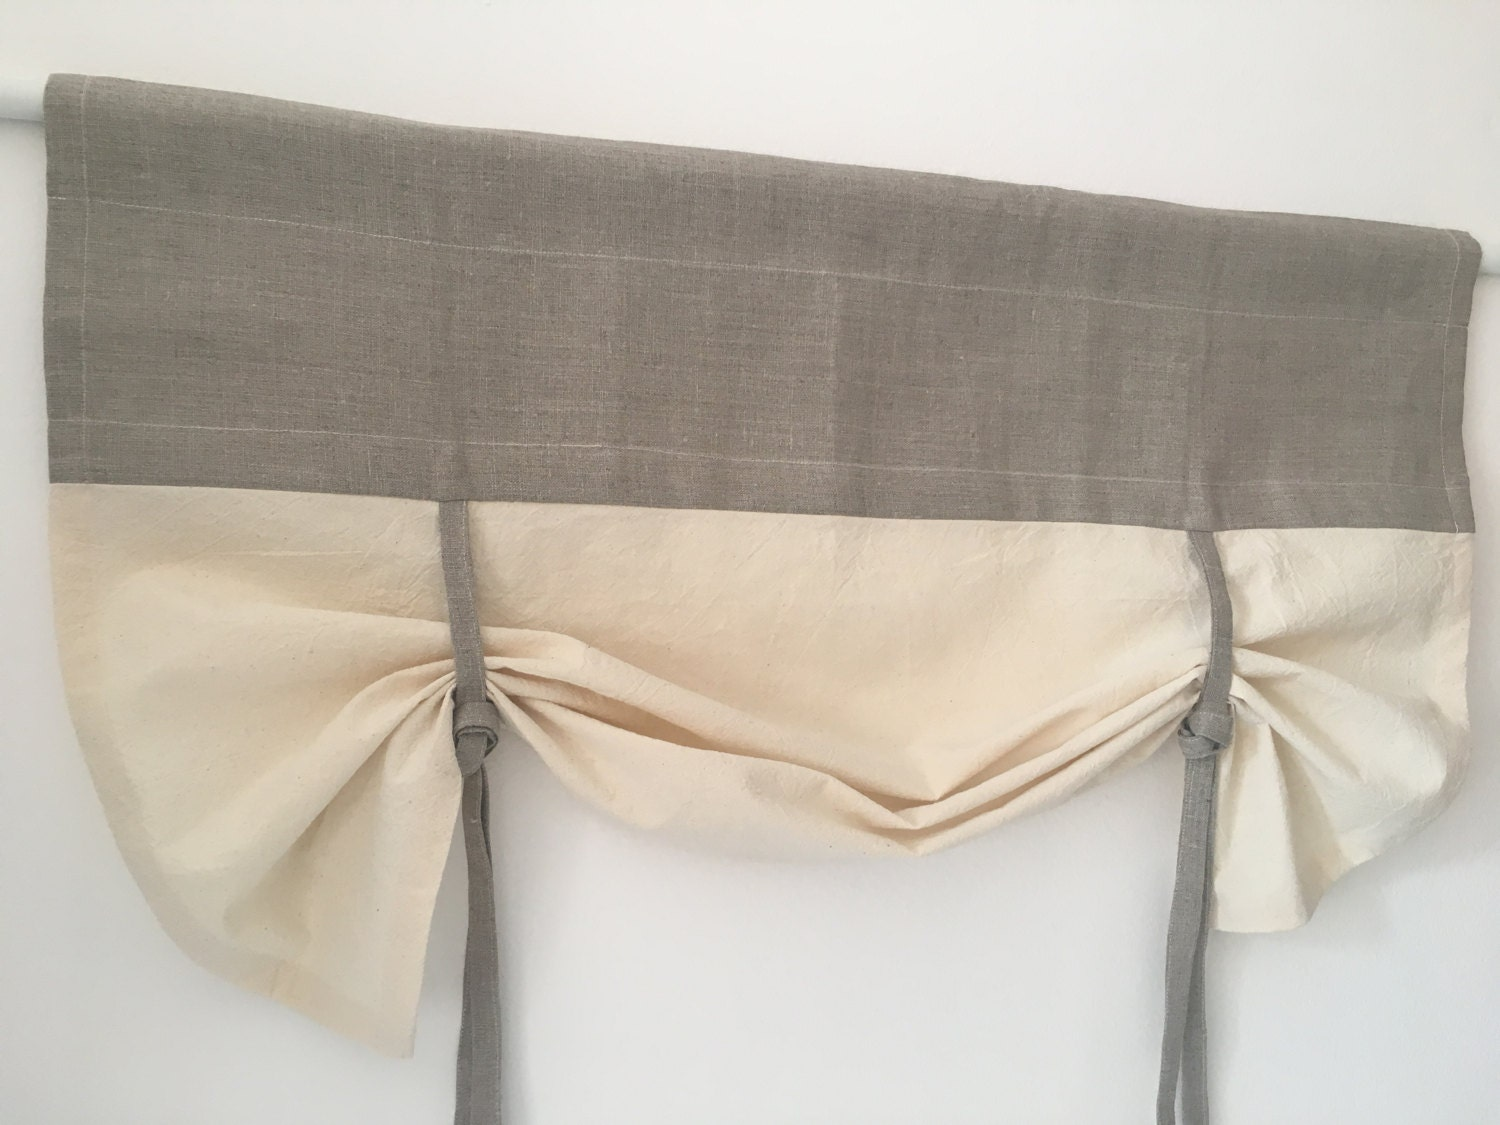 Linen Curtains Cottage Kitchen Tie Up Valance Simple Rustic